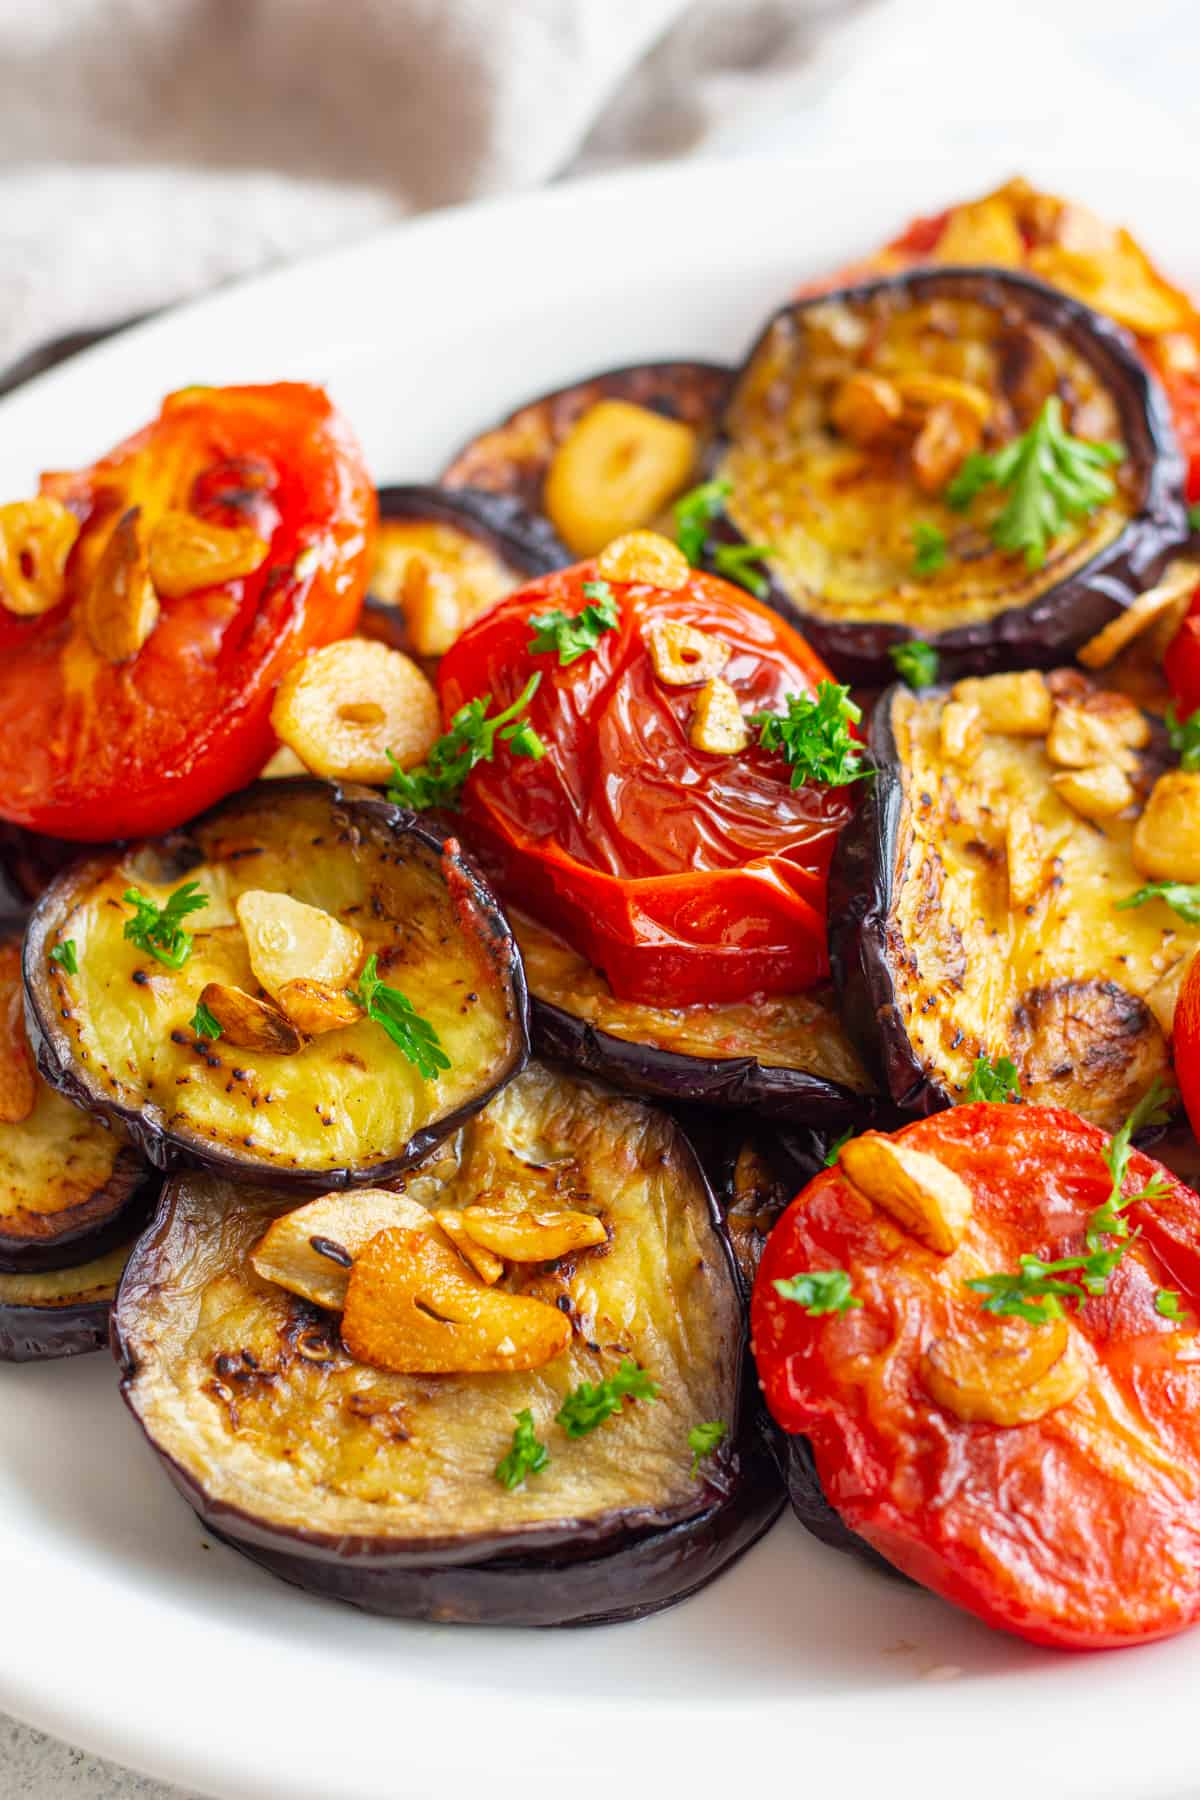 fried eggplant topped with tomatoes and garlic.